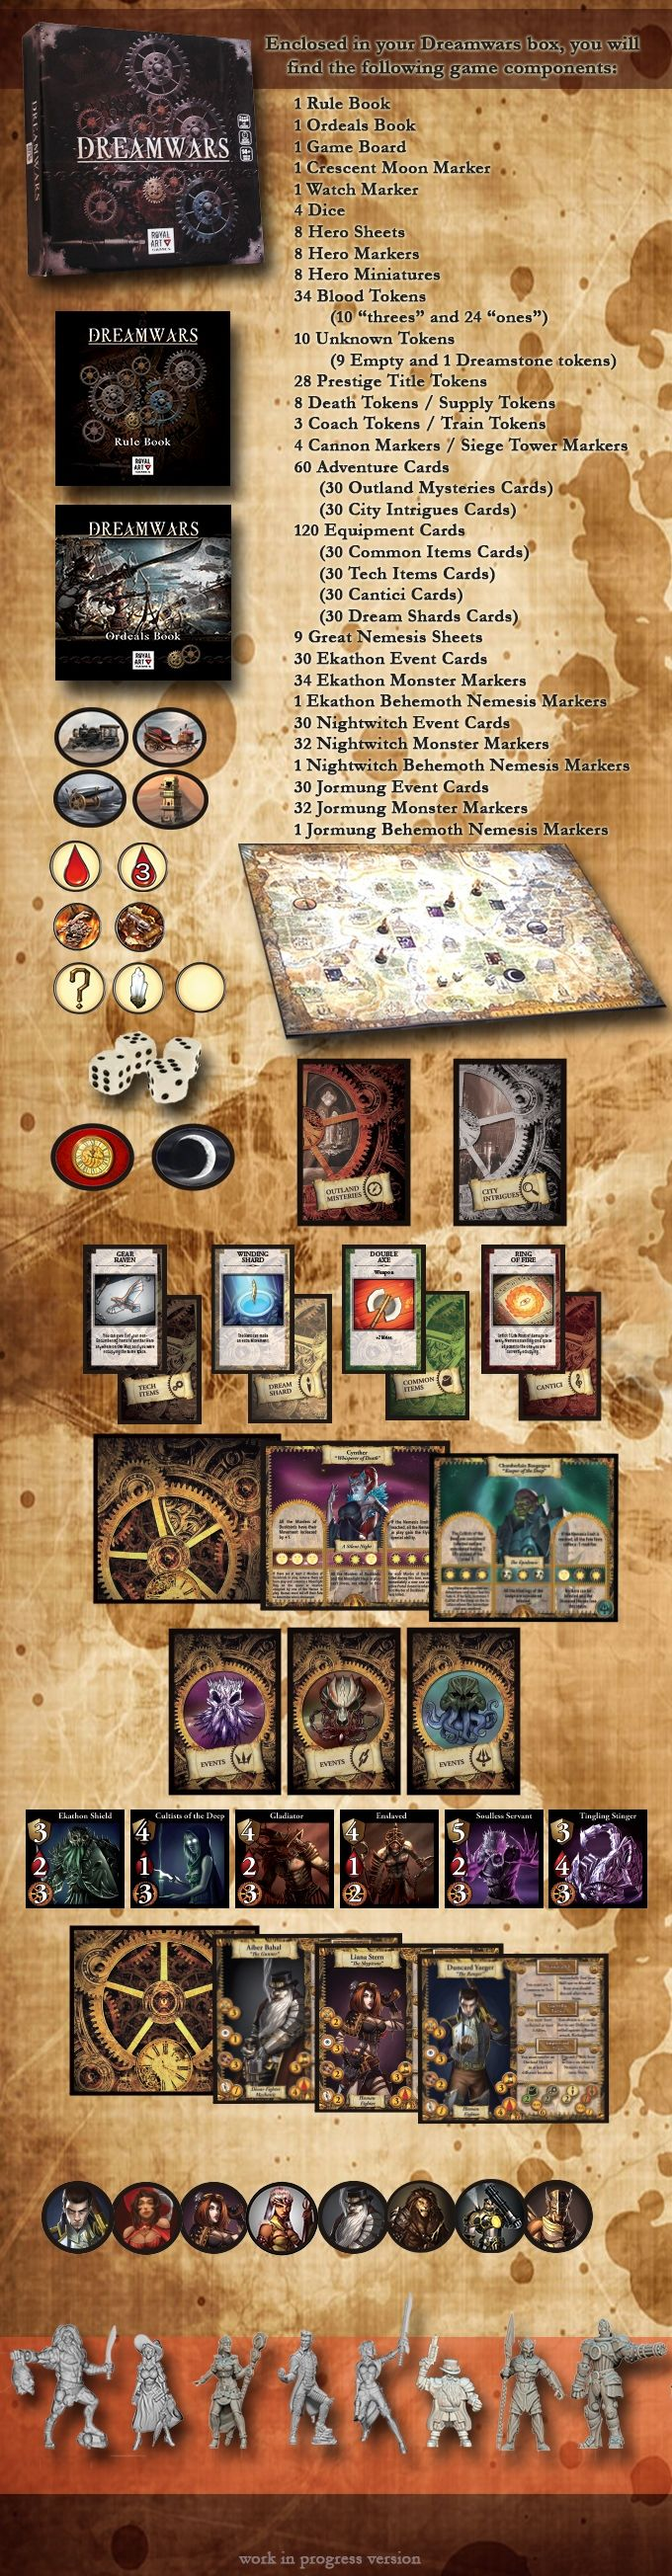 Dreamwars is a 1-to-8 players cooperative board game set in an original steampunk horror world.